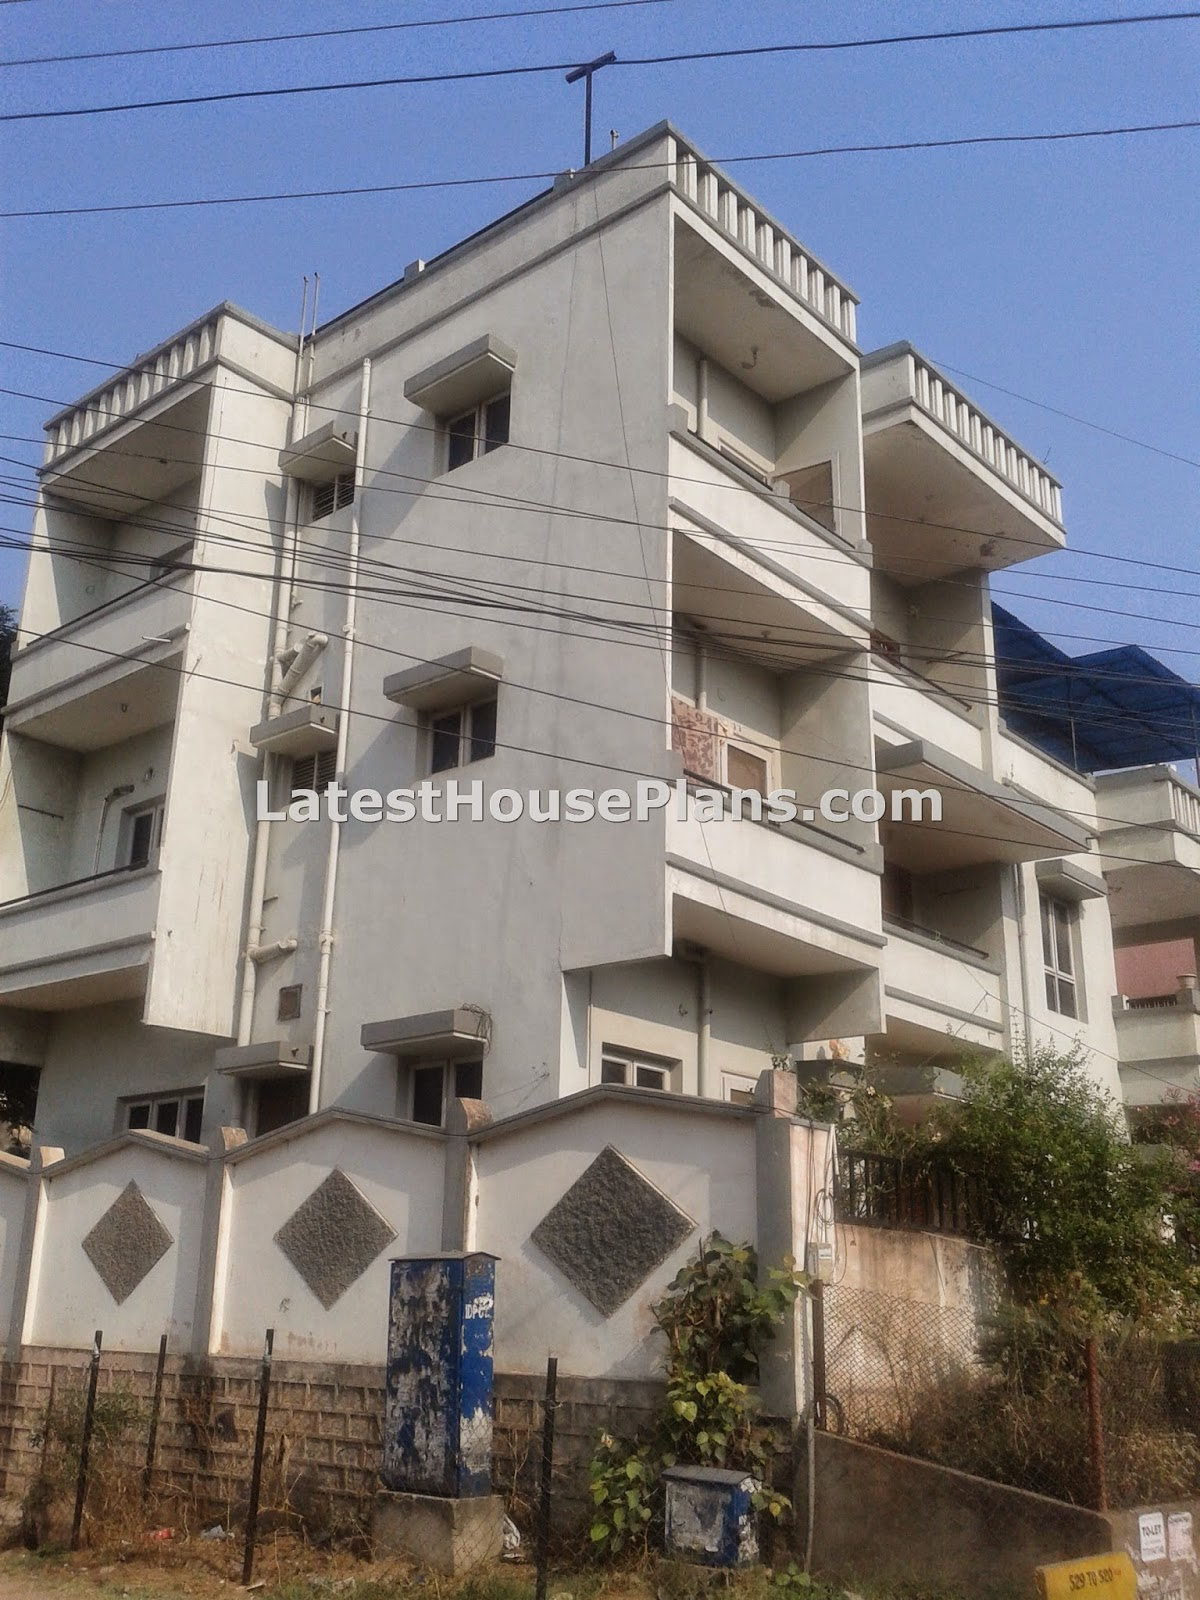 Andhra pradesh 3 floor house elevation designs latest for Building outer design